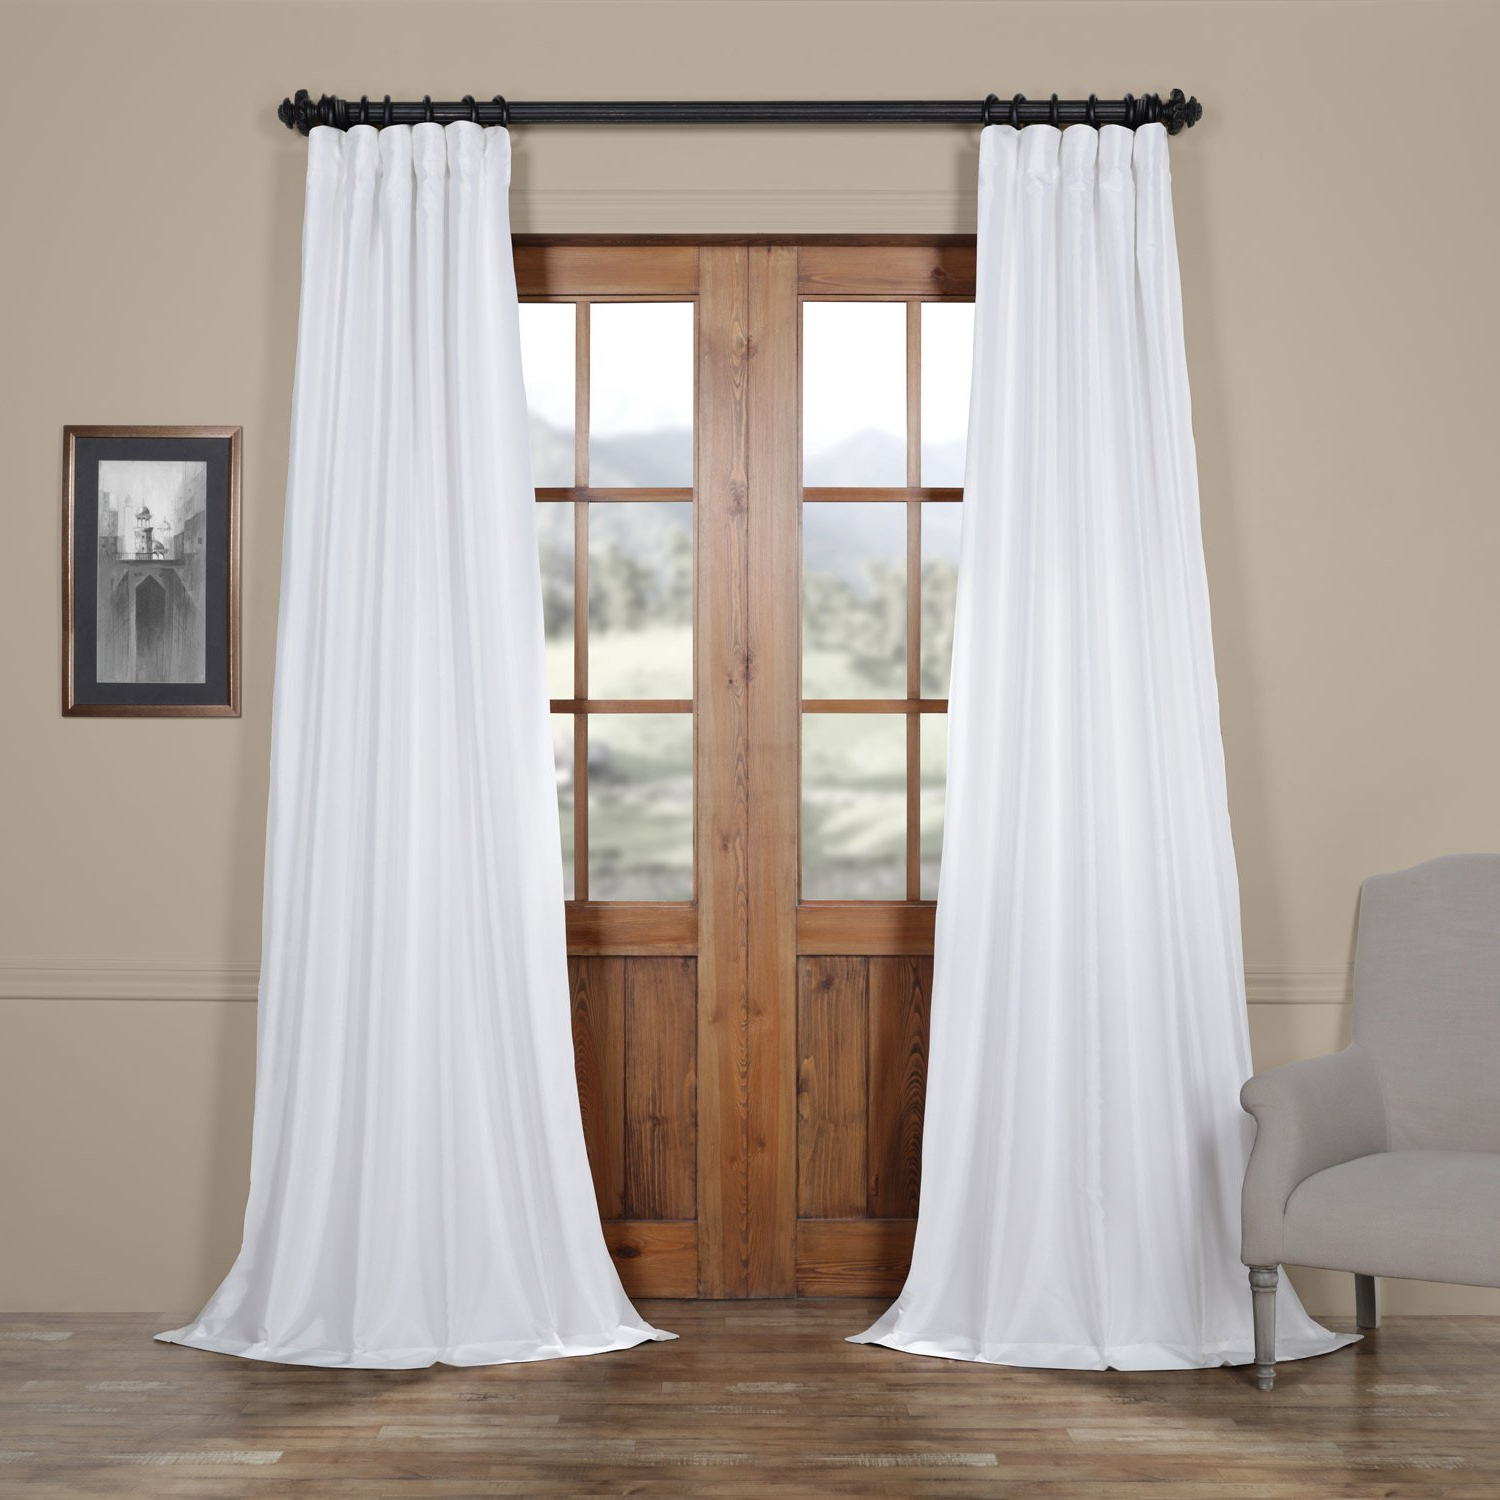 Most Recent Faux Silk Taffeta Solid Blackout Single Curtain Panels Intended For Exclusive Fabrics Faux Silk Taffeta Solid Blackout Curtain (Gallery 7 of 20)